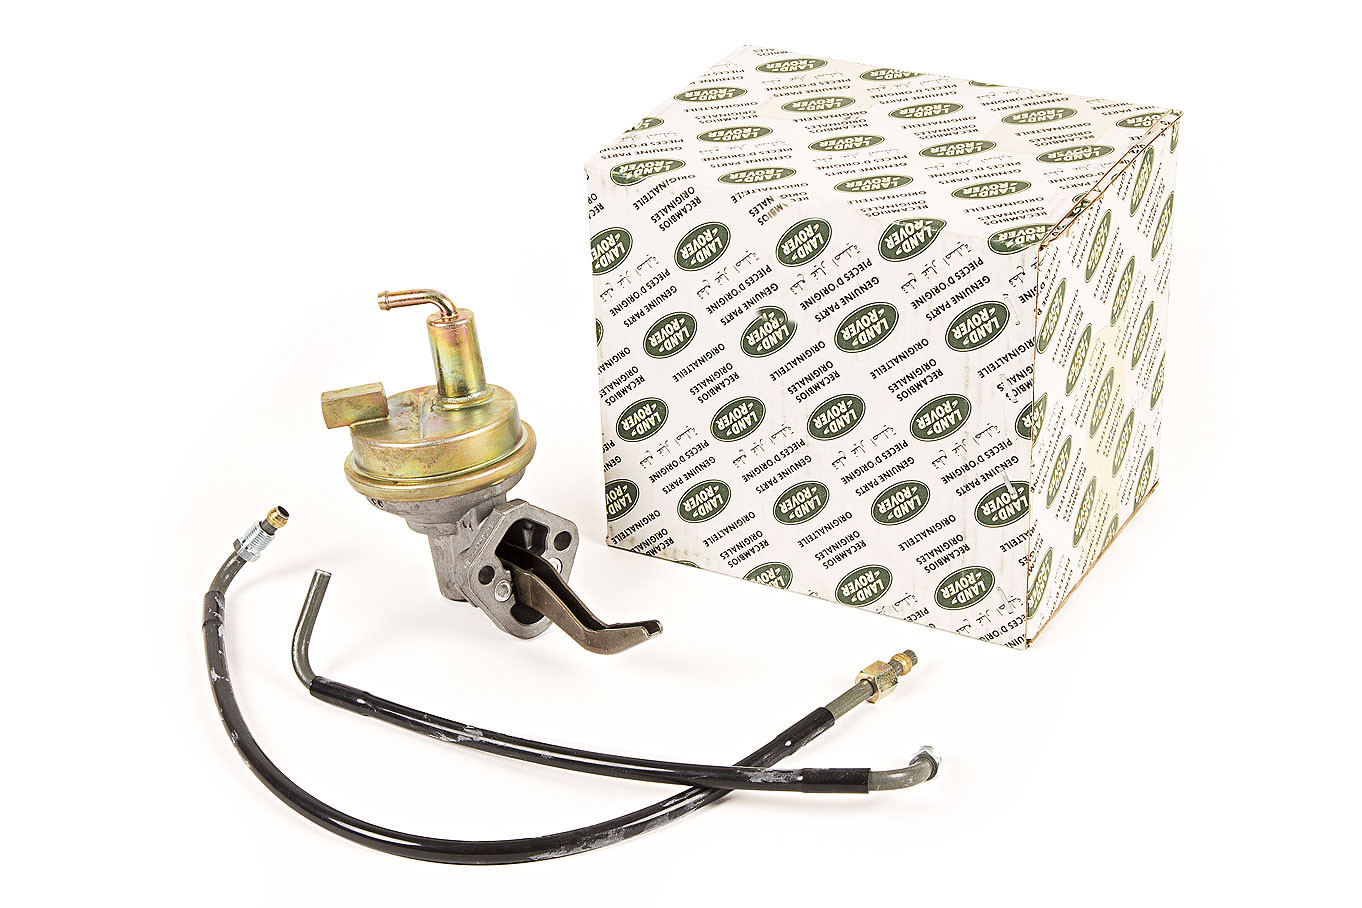 Range Rover Fuel pump